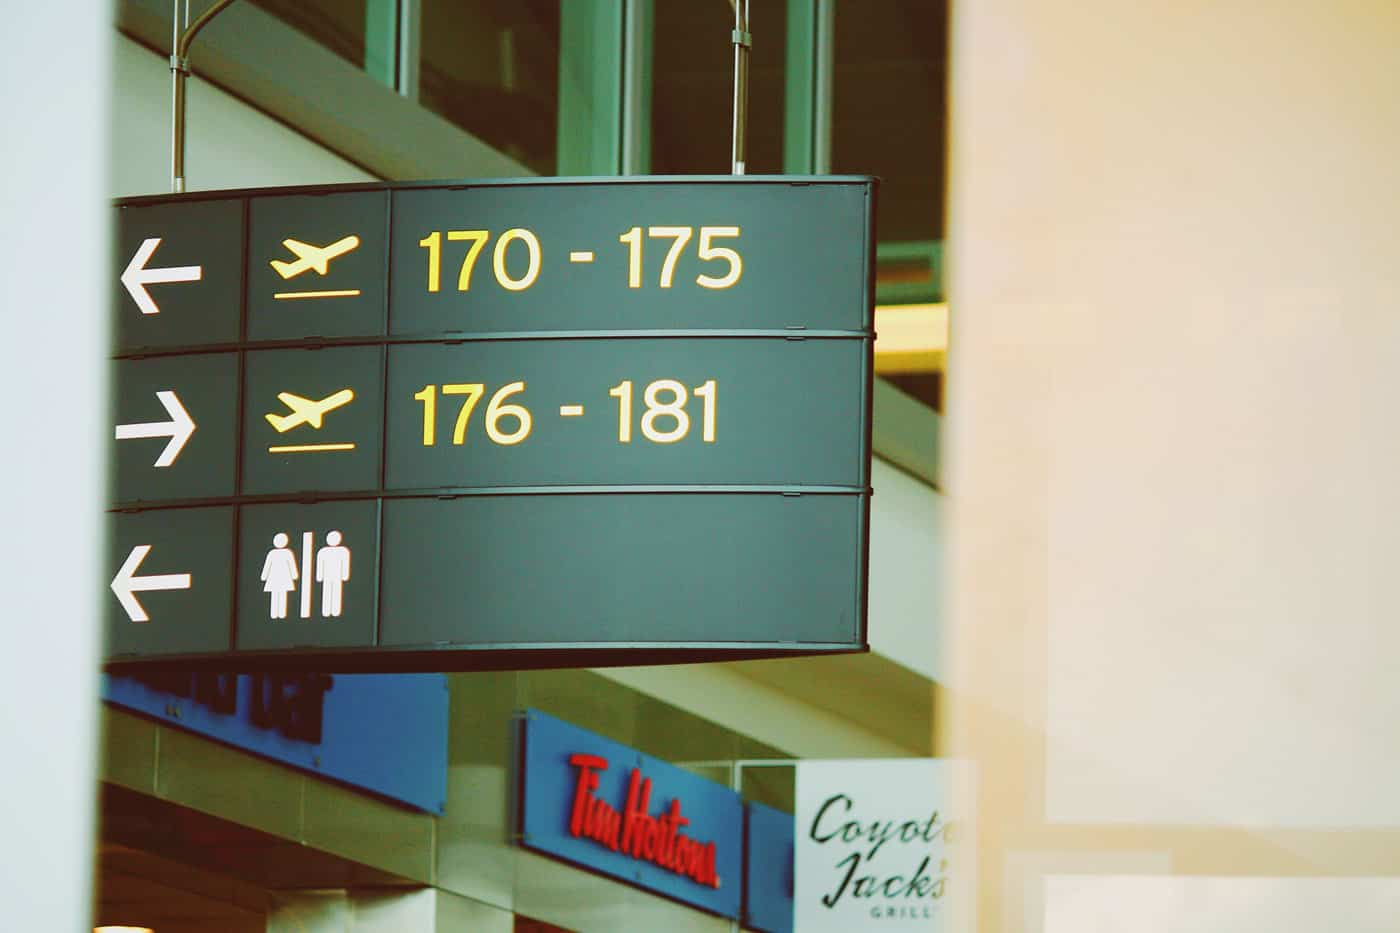 Airport signage photo by George Kourounis on Unsplash